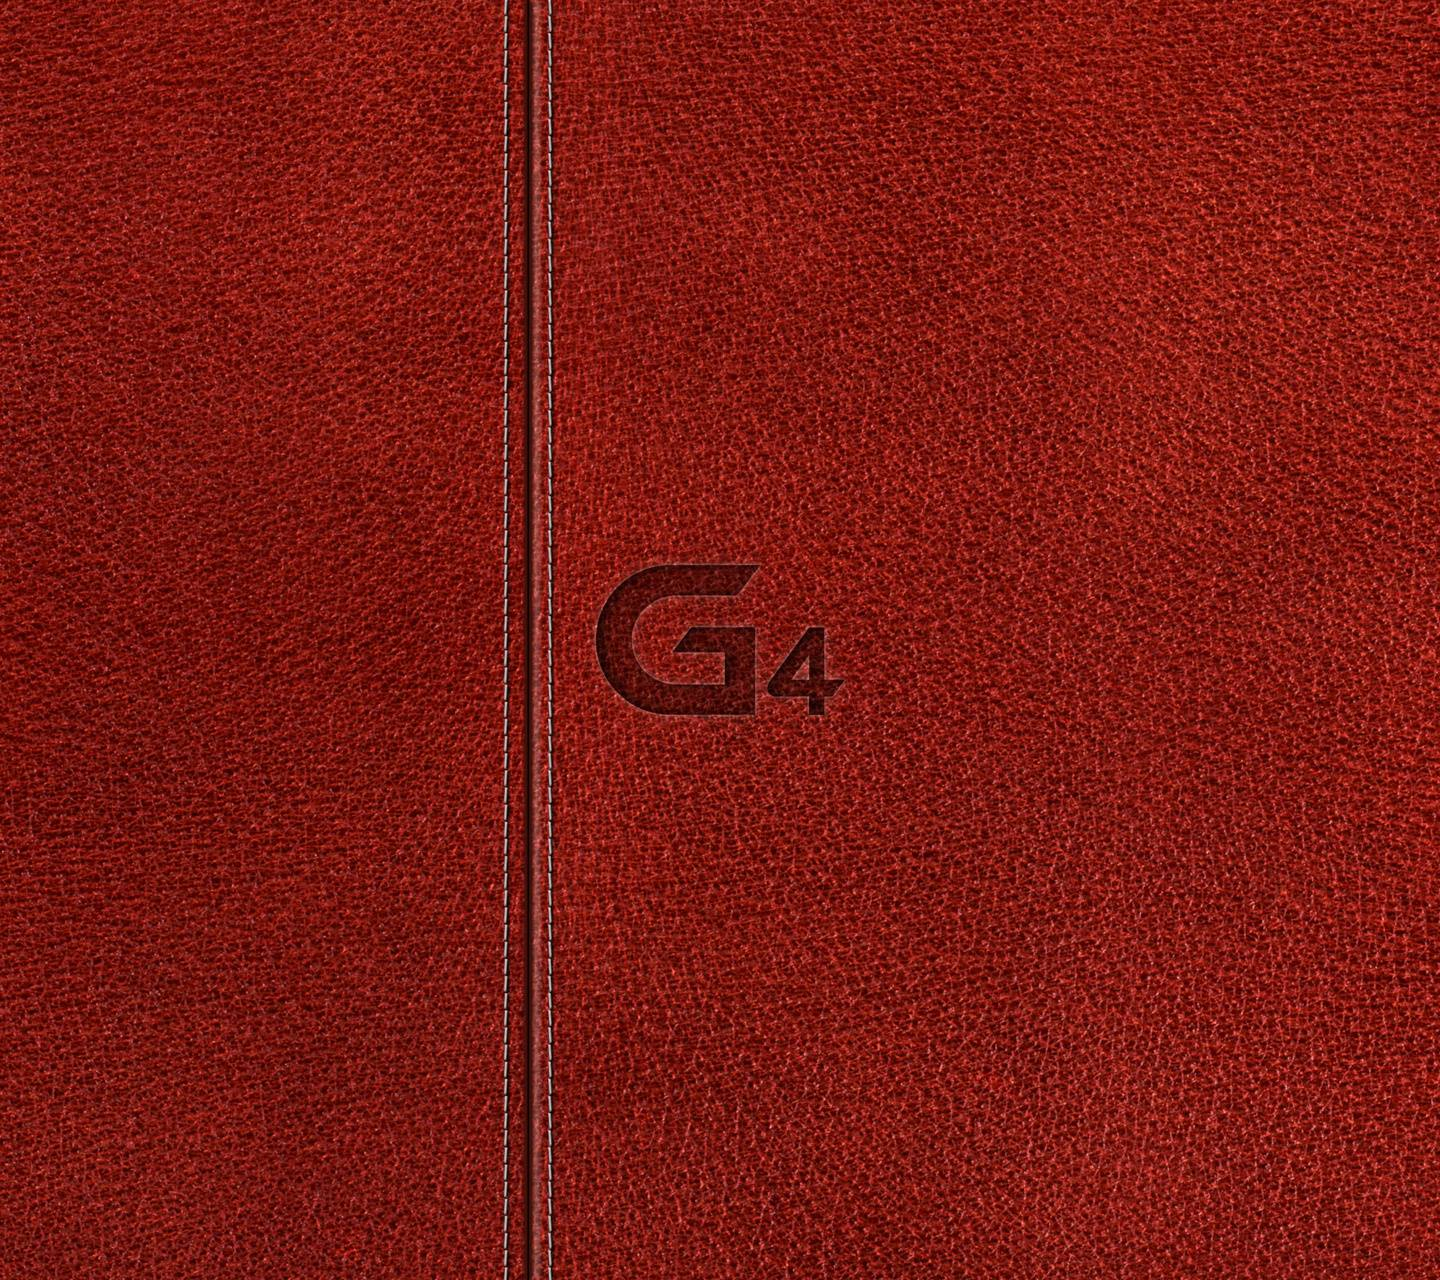 Lg G4 Red Leather Wallpaper By Globarr 03 Free On Zedge